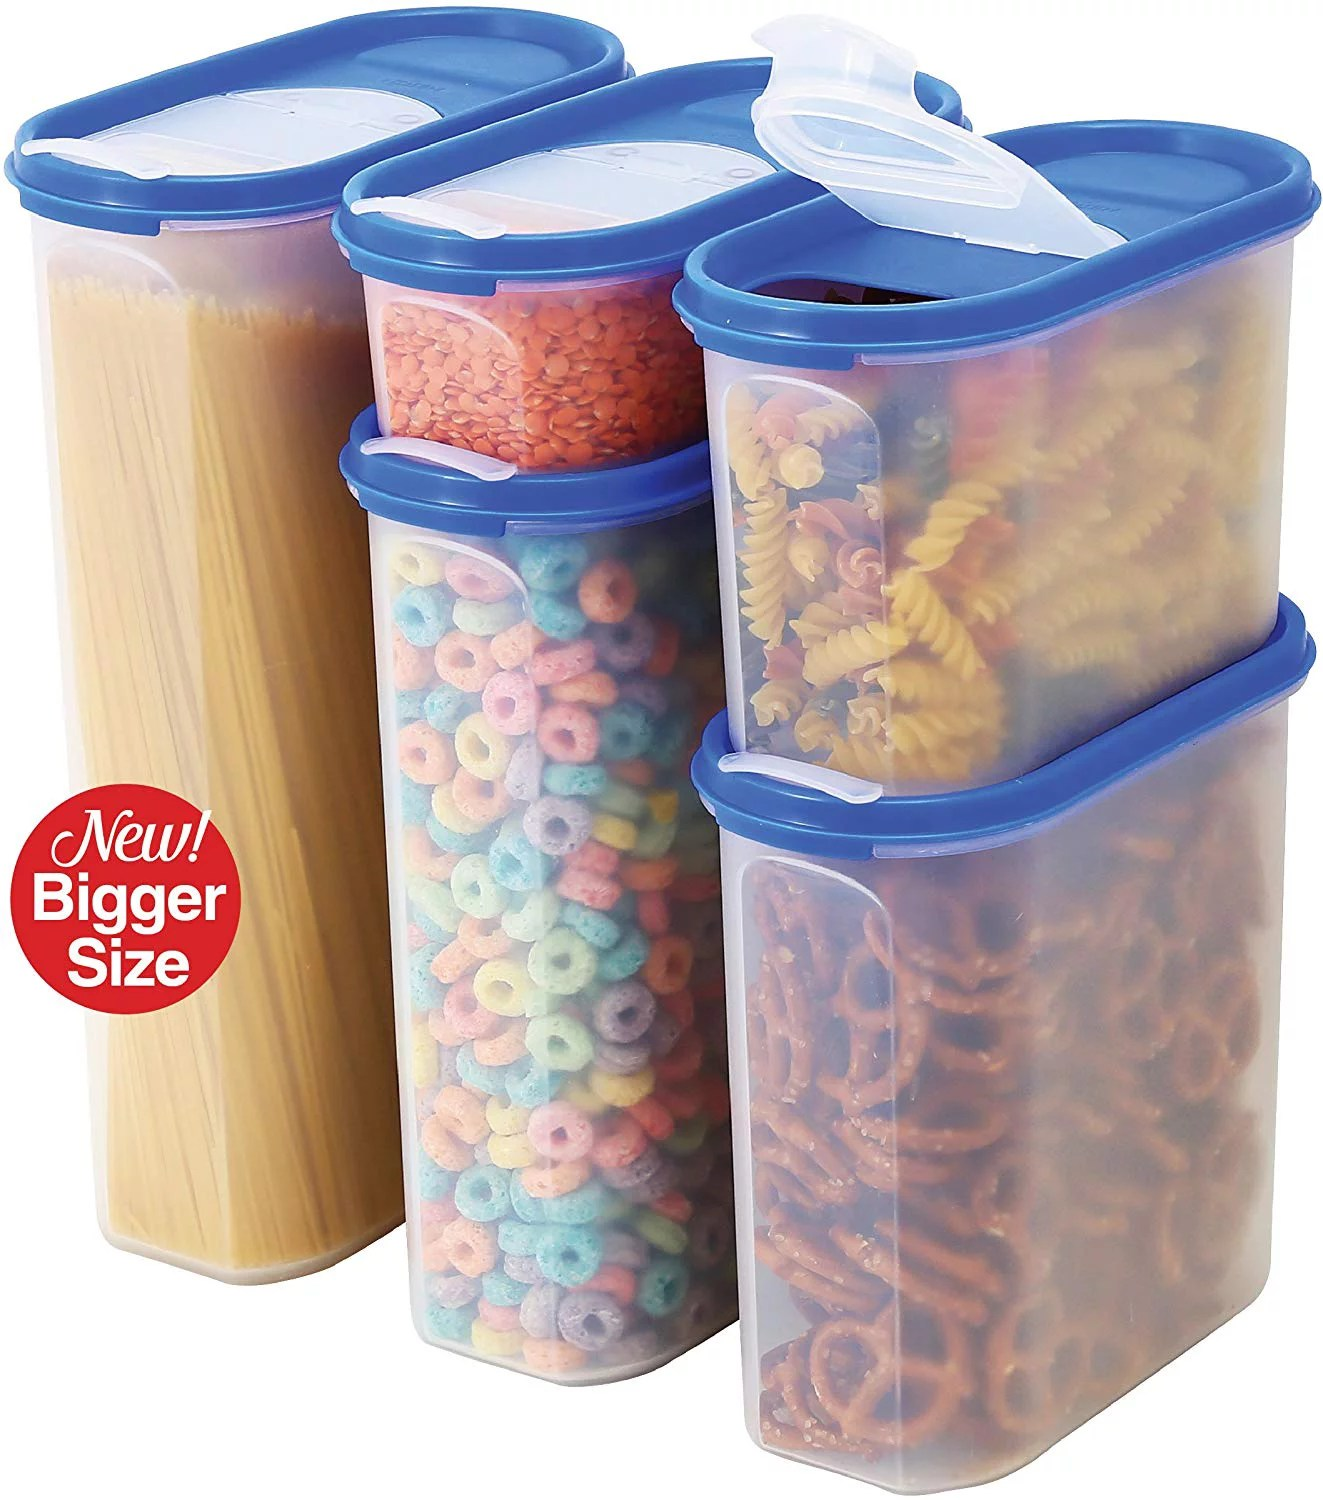 Food Storage Containers Set Stacko 10 Pc Set Airtight Dry Food Container With Pouring Lids Durable Clear Frosted Plastic Bpa Free Space Saver Modular Design 5 Container Set Walmart Com Walmart Com